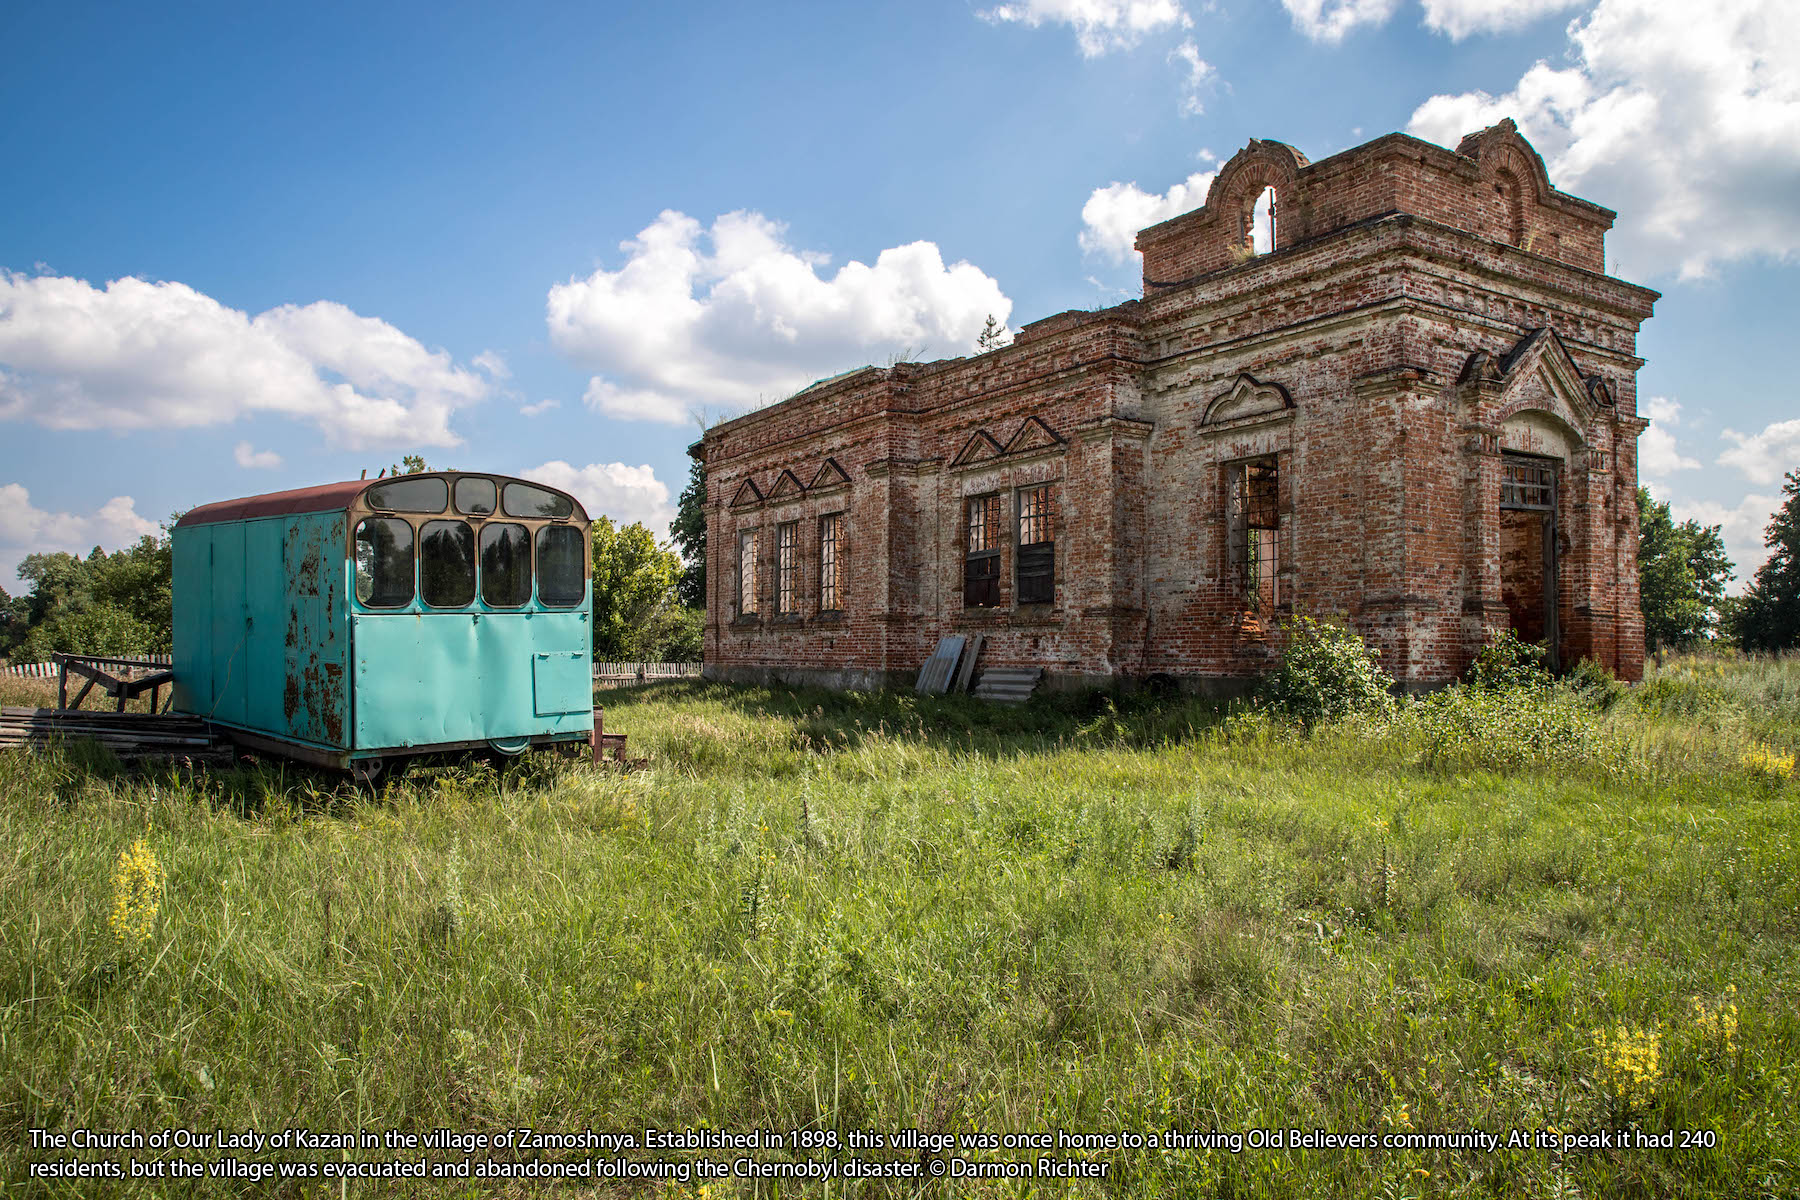 The Church of Our Lady of Kazan in the village of Zamoshnya. Established in 1898, this village was once home to a thriving Old Believers community. At its peak it had 240 residents, but the village was evacuated and abandoned following the Chernobyl disaster. © Darmon Richter